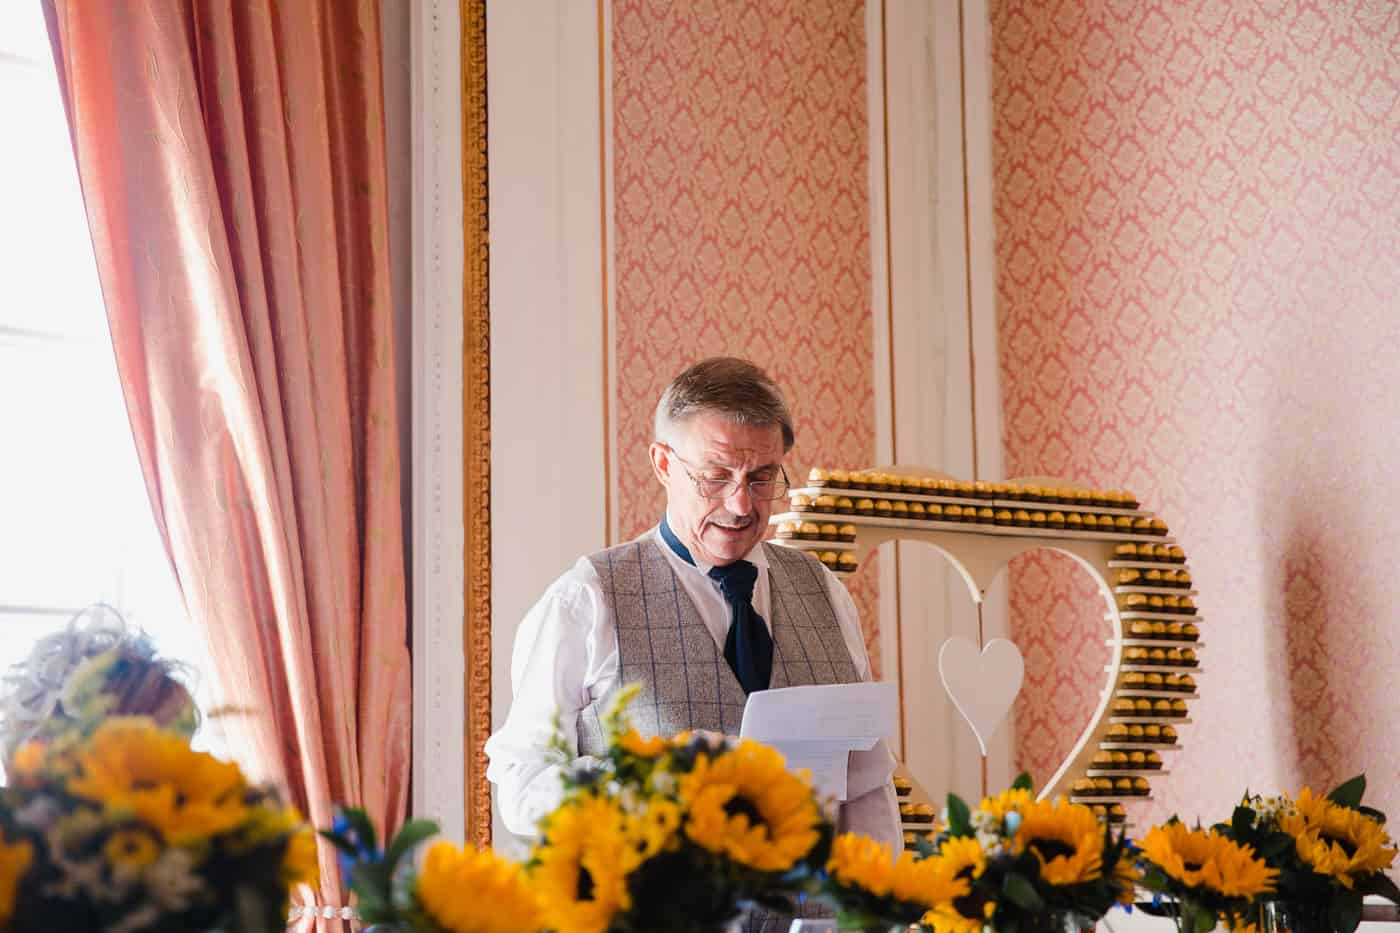 South Wales Wedding Photographer Speeches